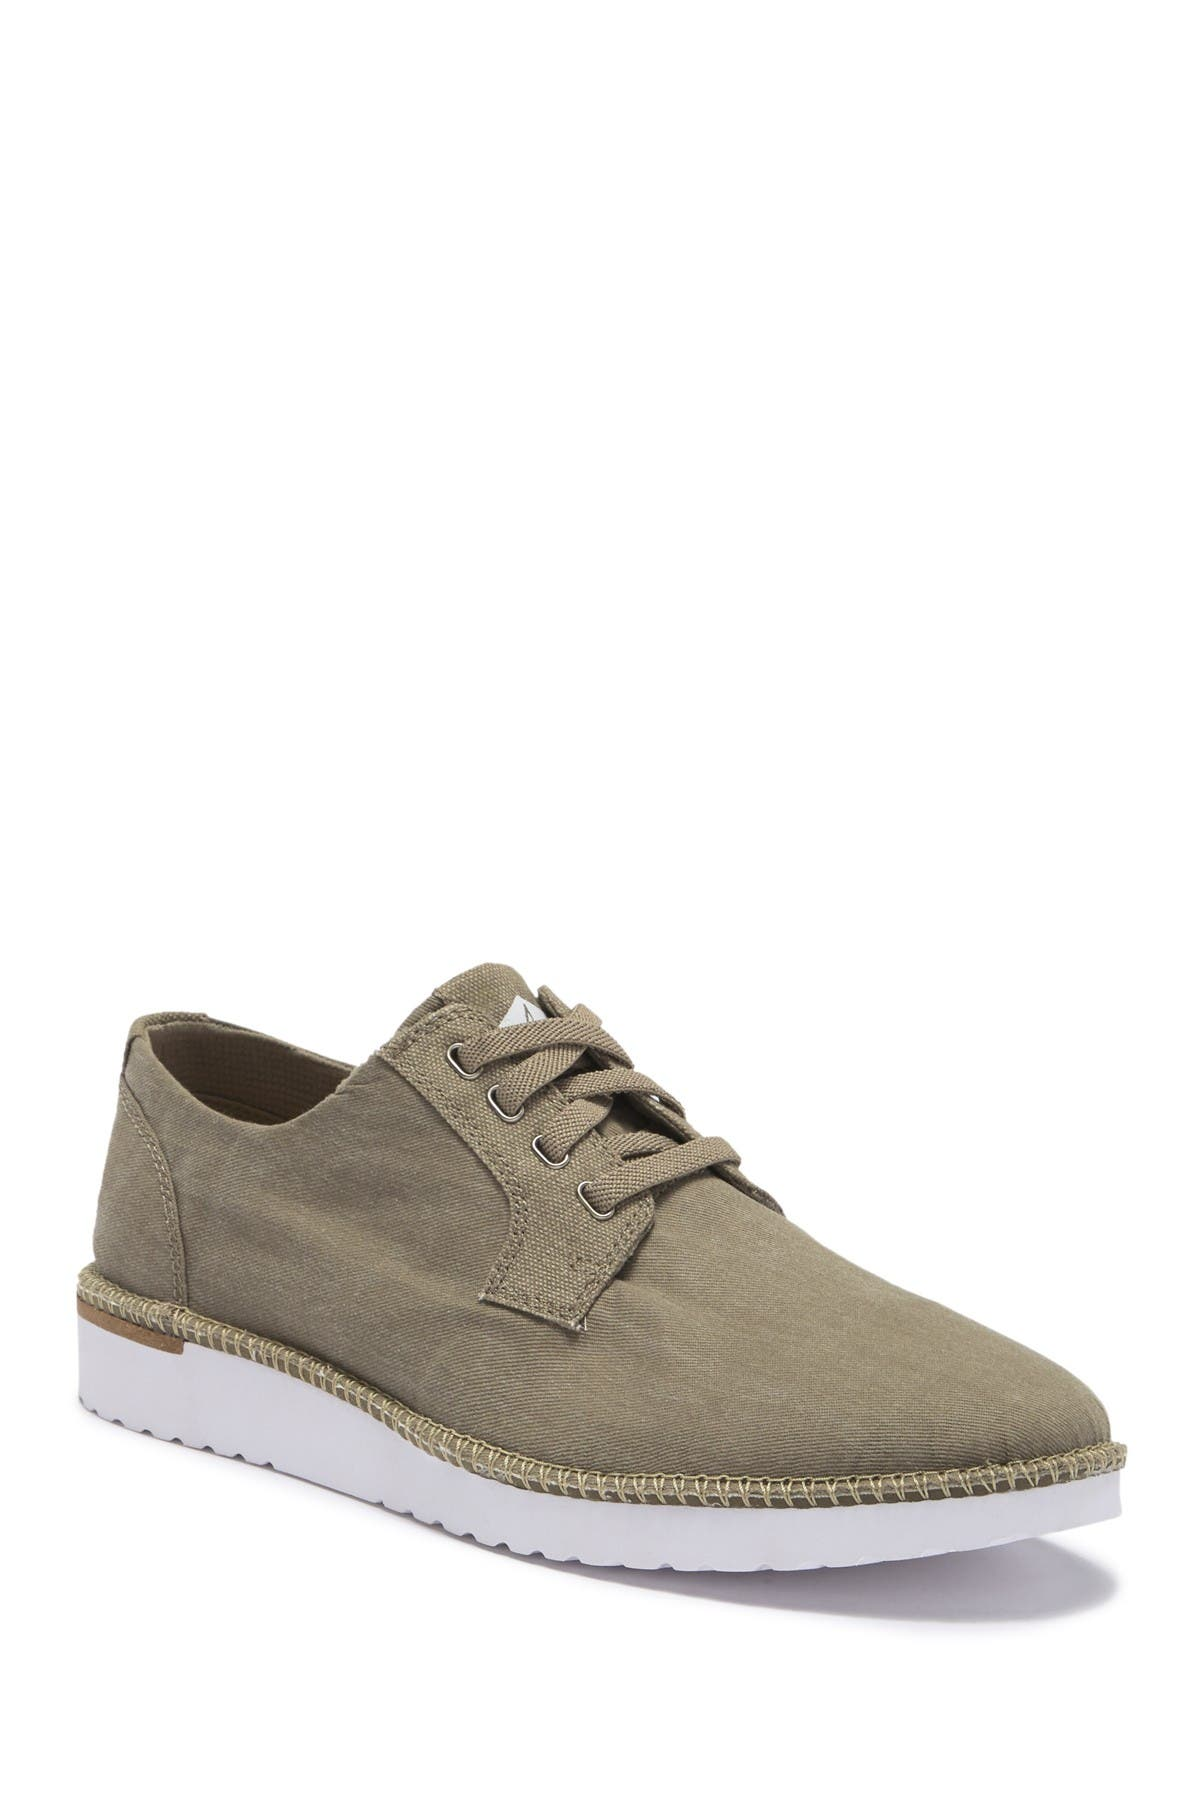 Image of Sperry Camden Canvas Oxford Sneaker